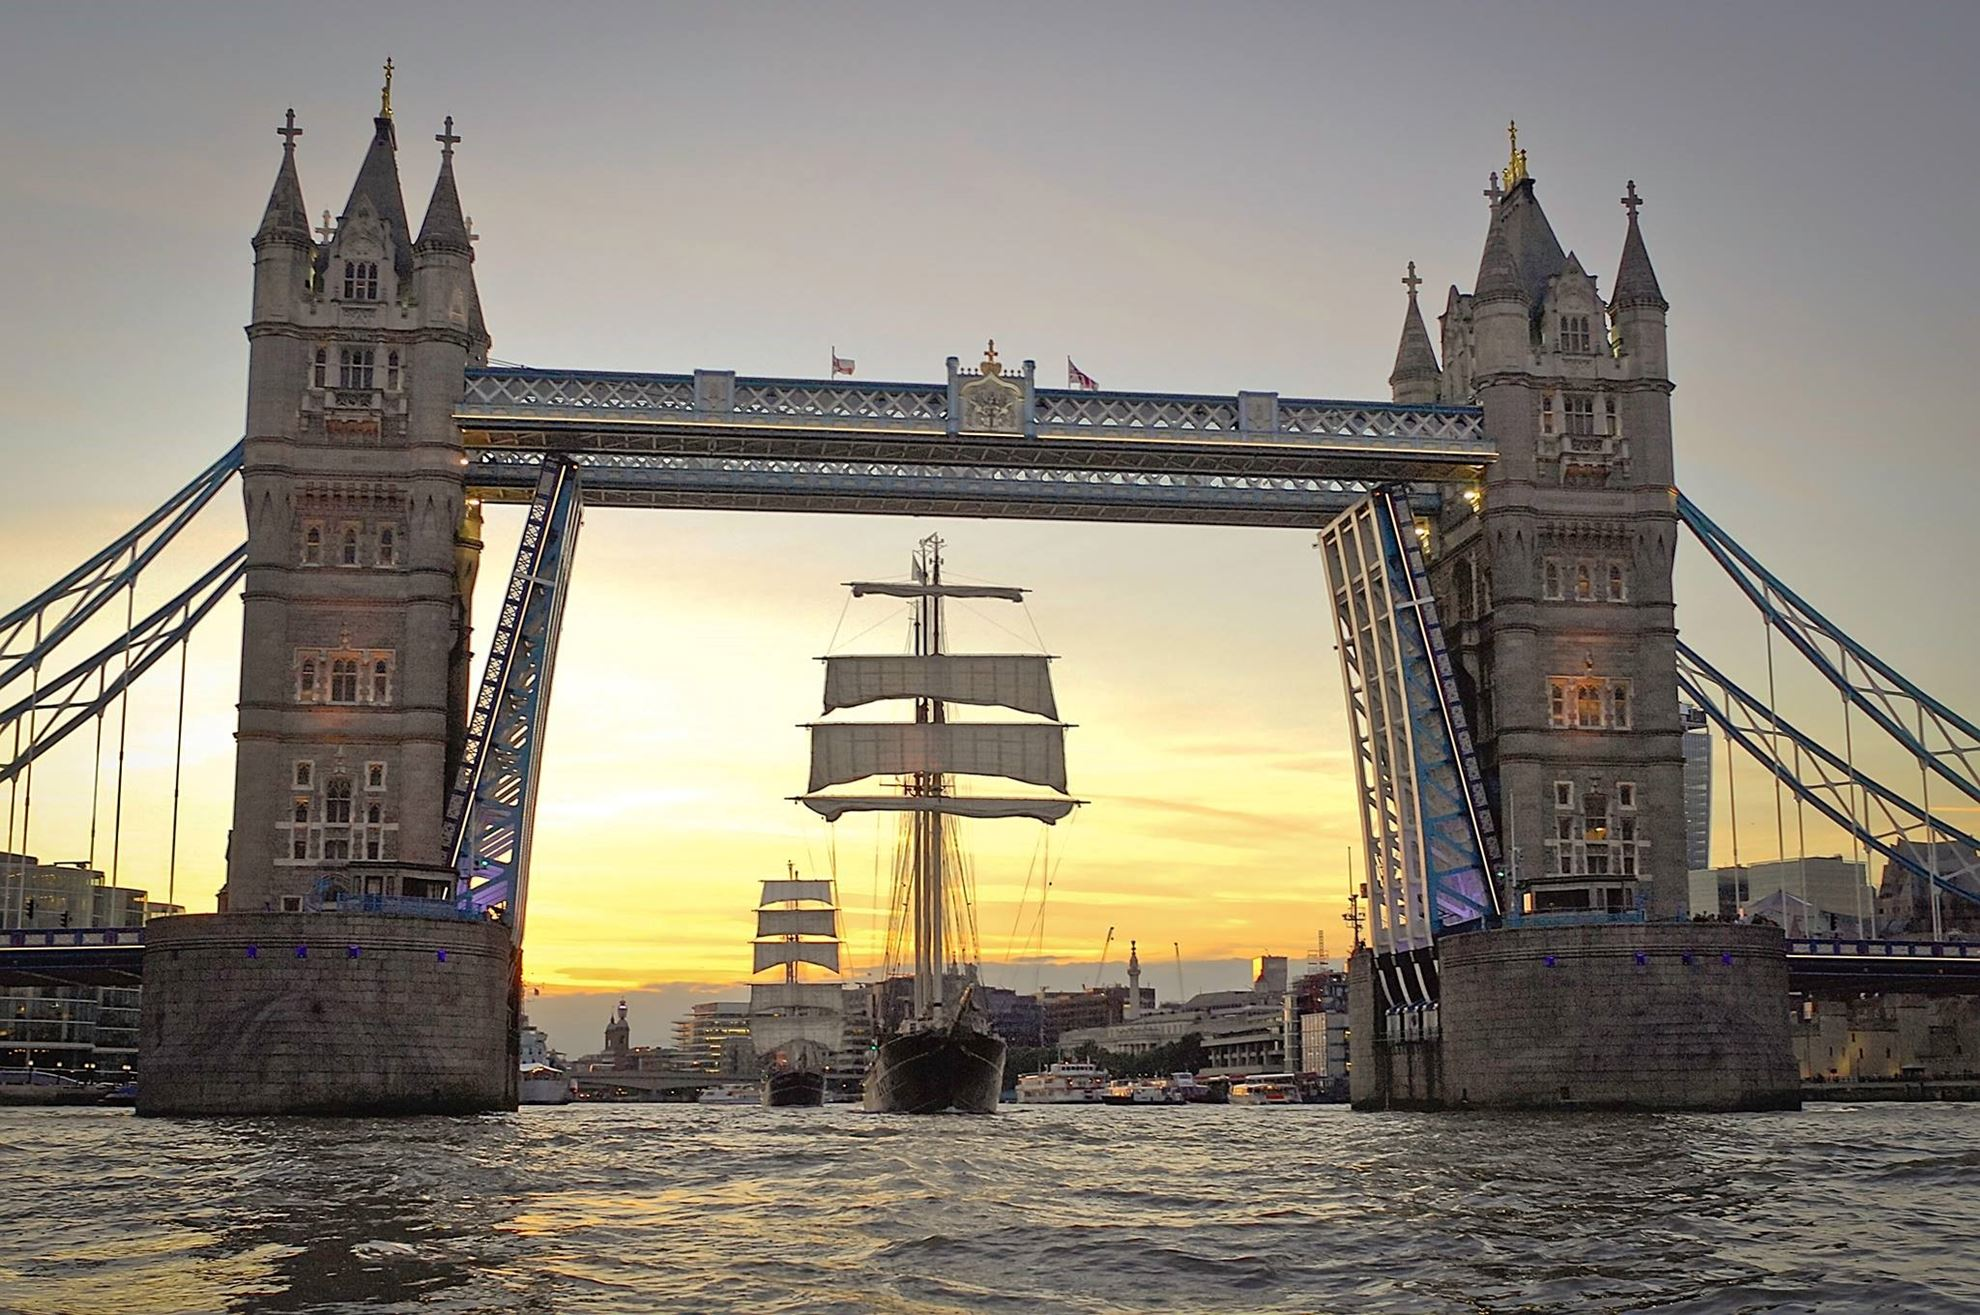 Stunning Scenes from Our Tall Ships and Fireworks Special!